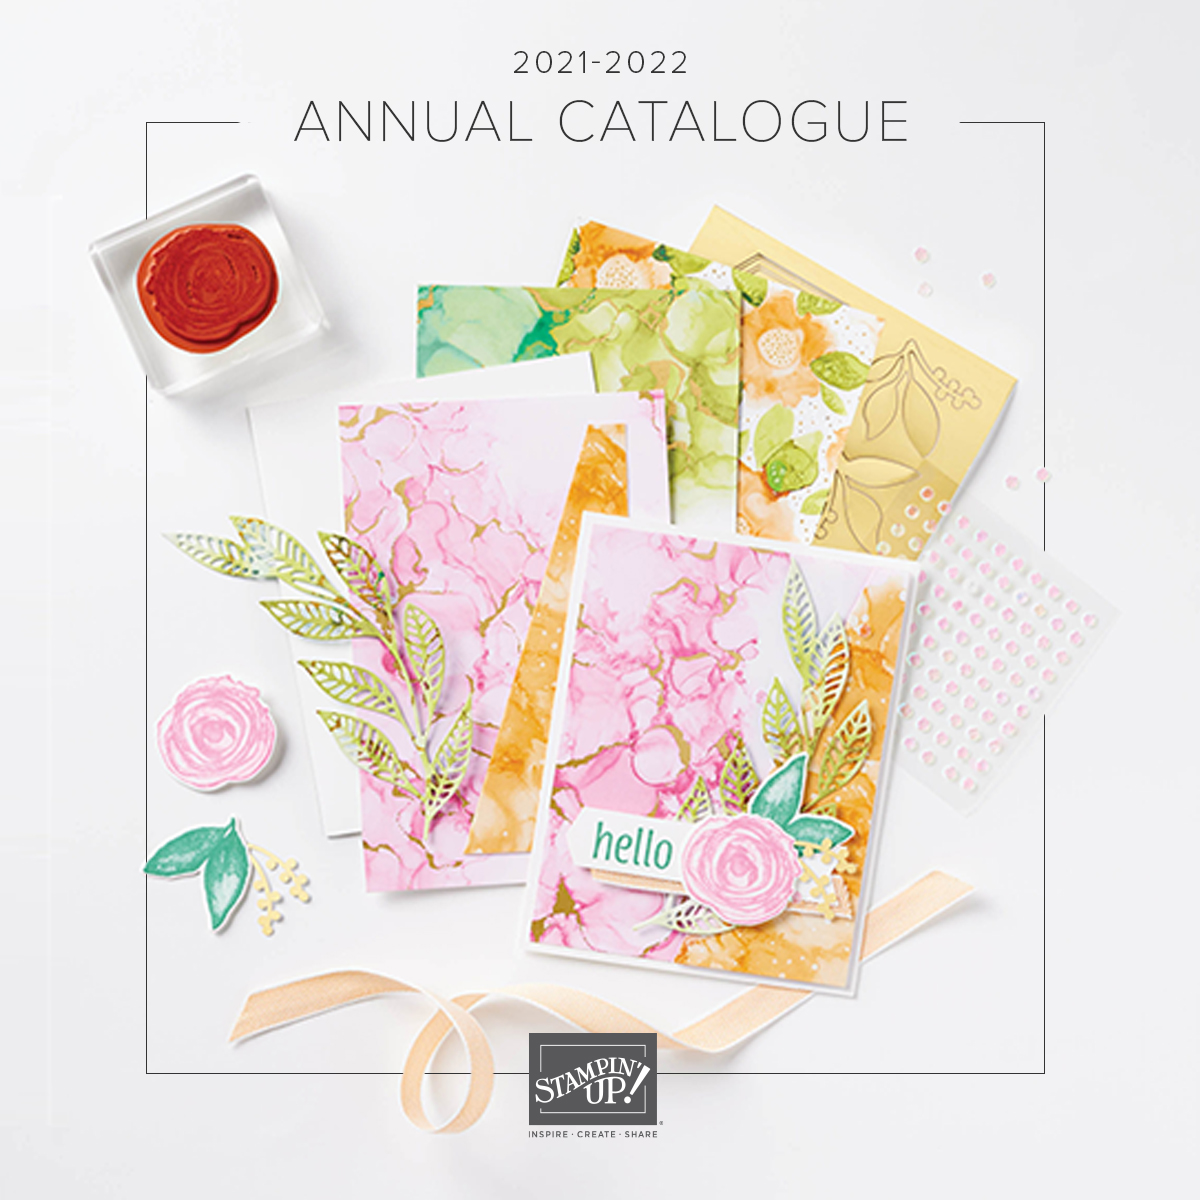 Annual Catalogue 2021 to 2022 click on image to download the Catalogue as a pdf